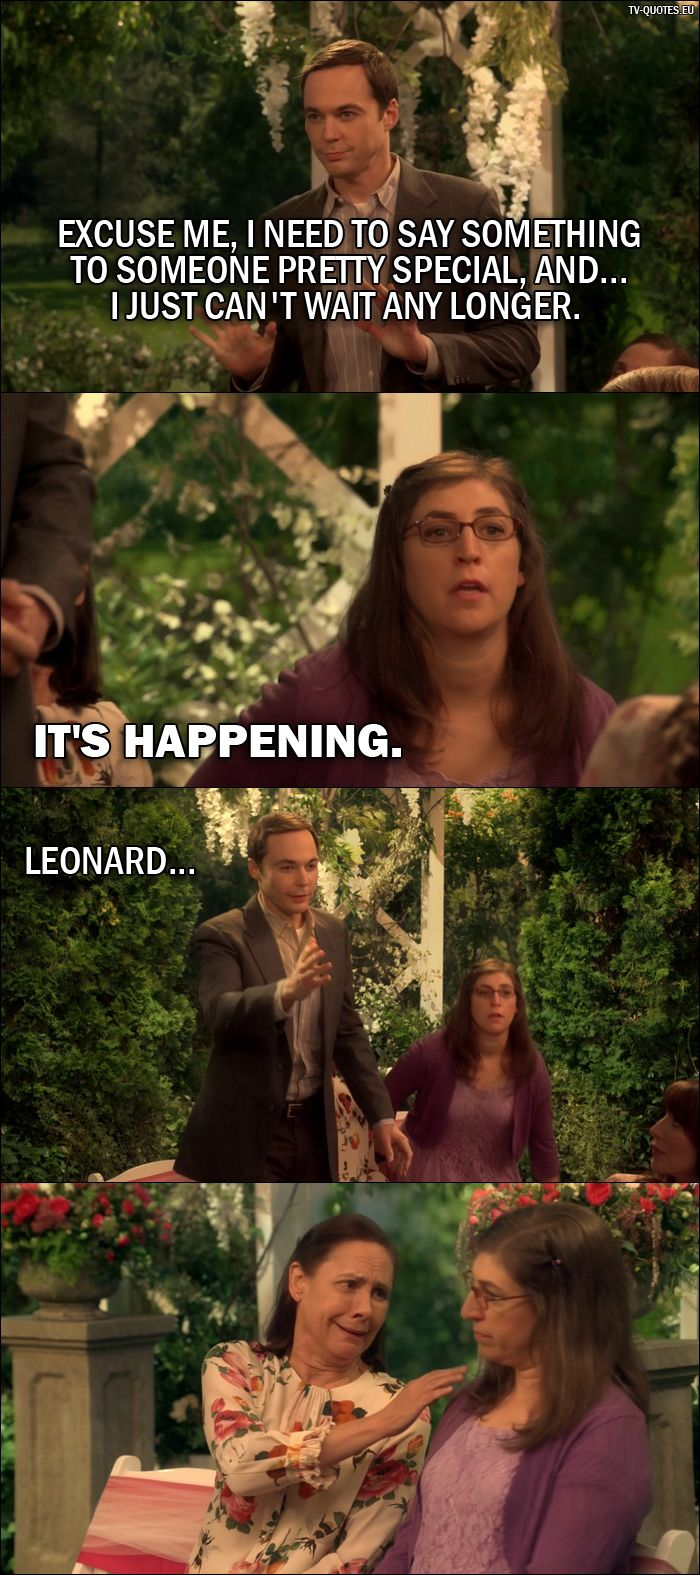 Quote from The Big Bang Theory 10x01 │  Sheldon Cooper: Excuse me, I need to say something to someone pretty special, and… I just can't wait any longer. Amy Farrah Fowler: It's happening. Sheldon Cooper: Leonard…